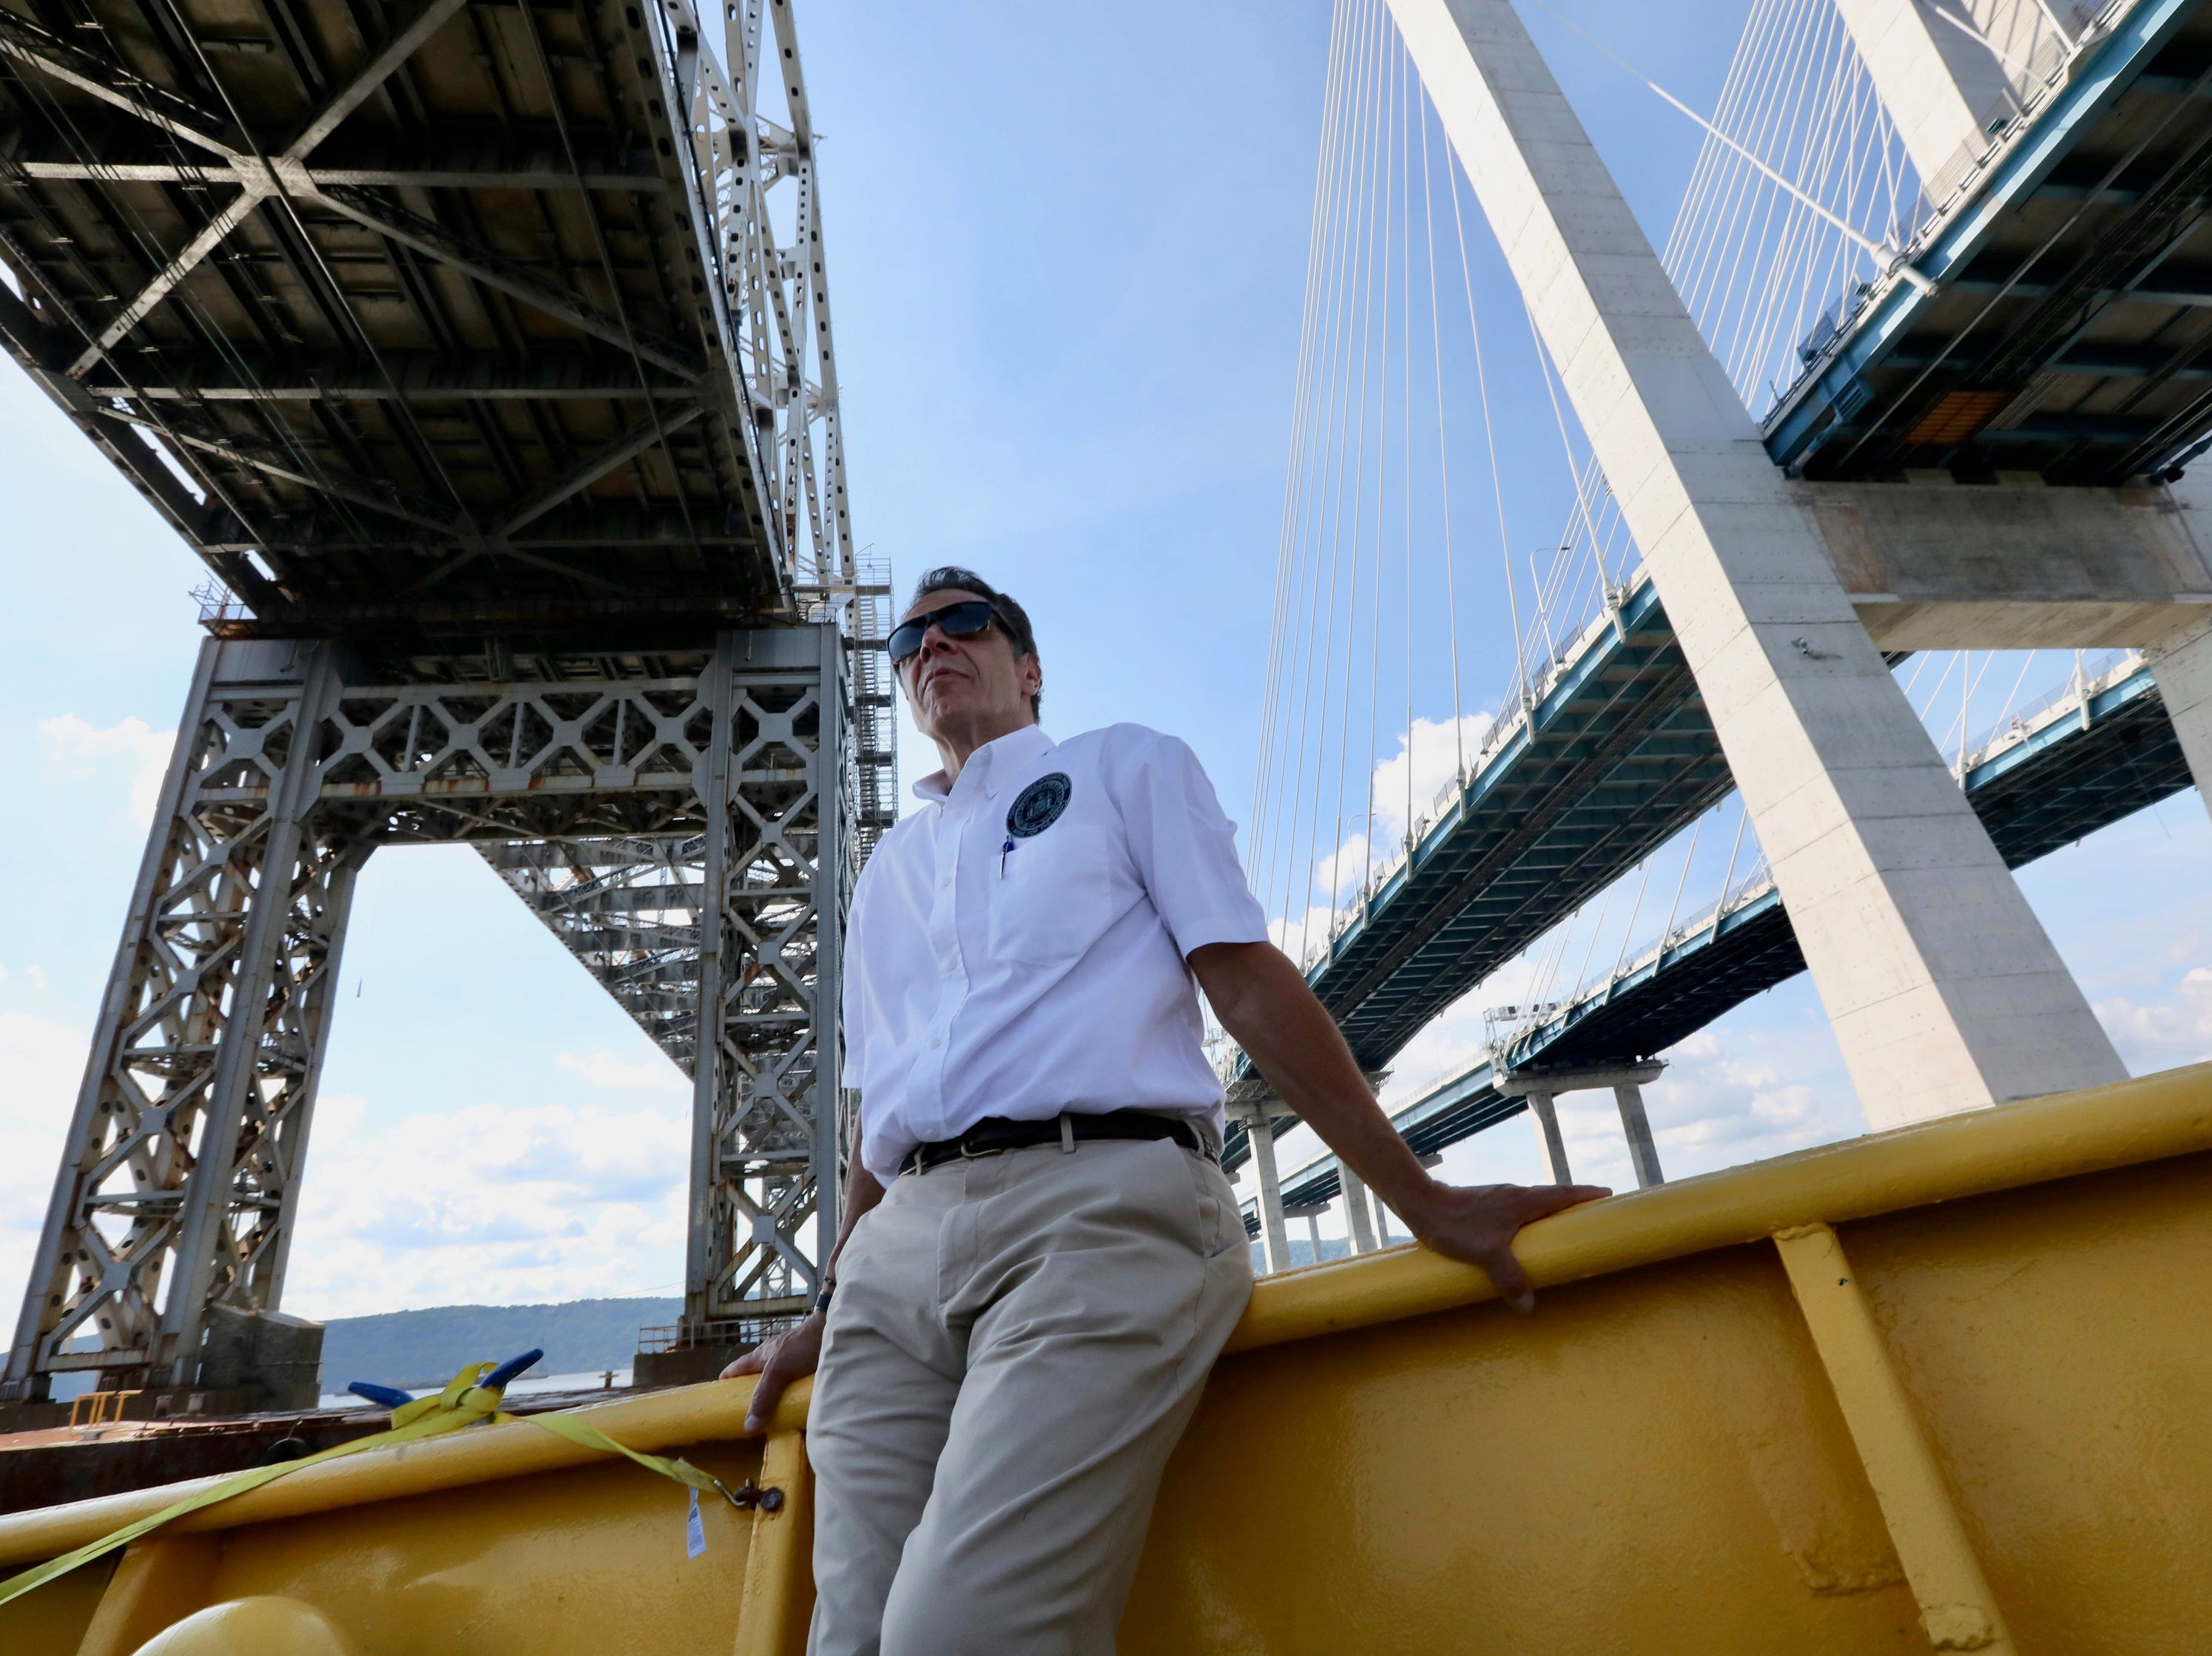 Gov. Andrew Cuomo with the Tappan Zee and Gov. Mario M. Cuomo Bridges during a boat tour Tuesday, Sept. 4, 2018. He announced that the second Cuomo Bridge span would open to traffic Saturday, Sept. 8, 2018.